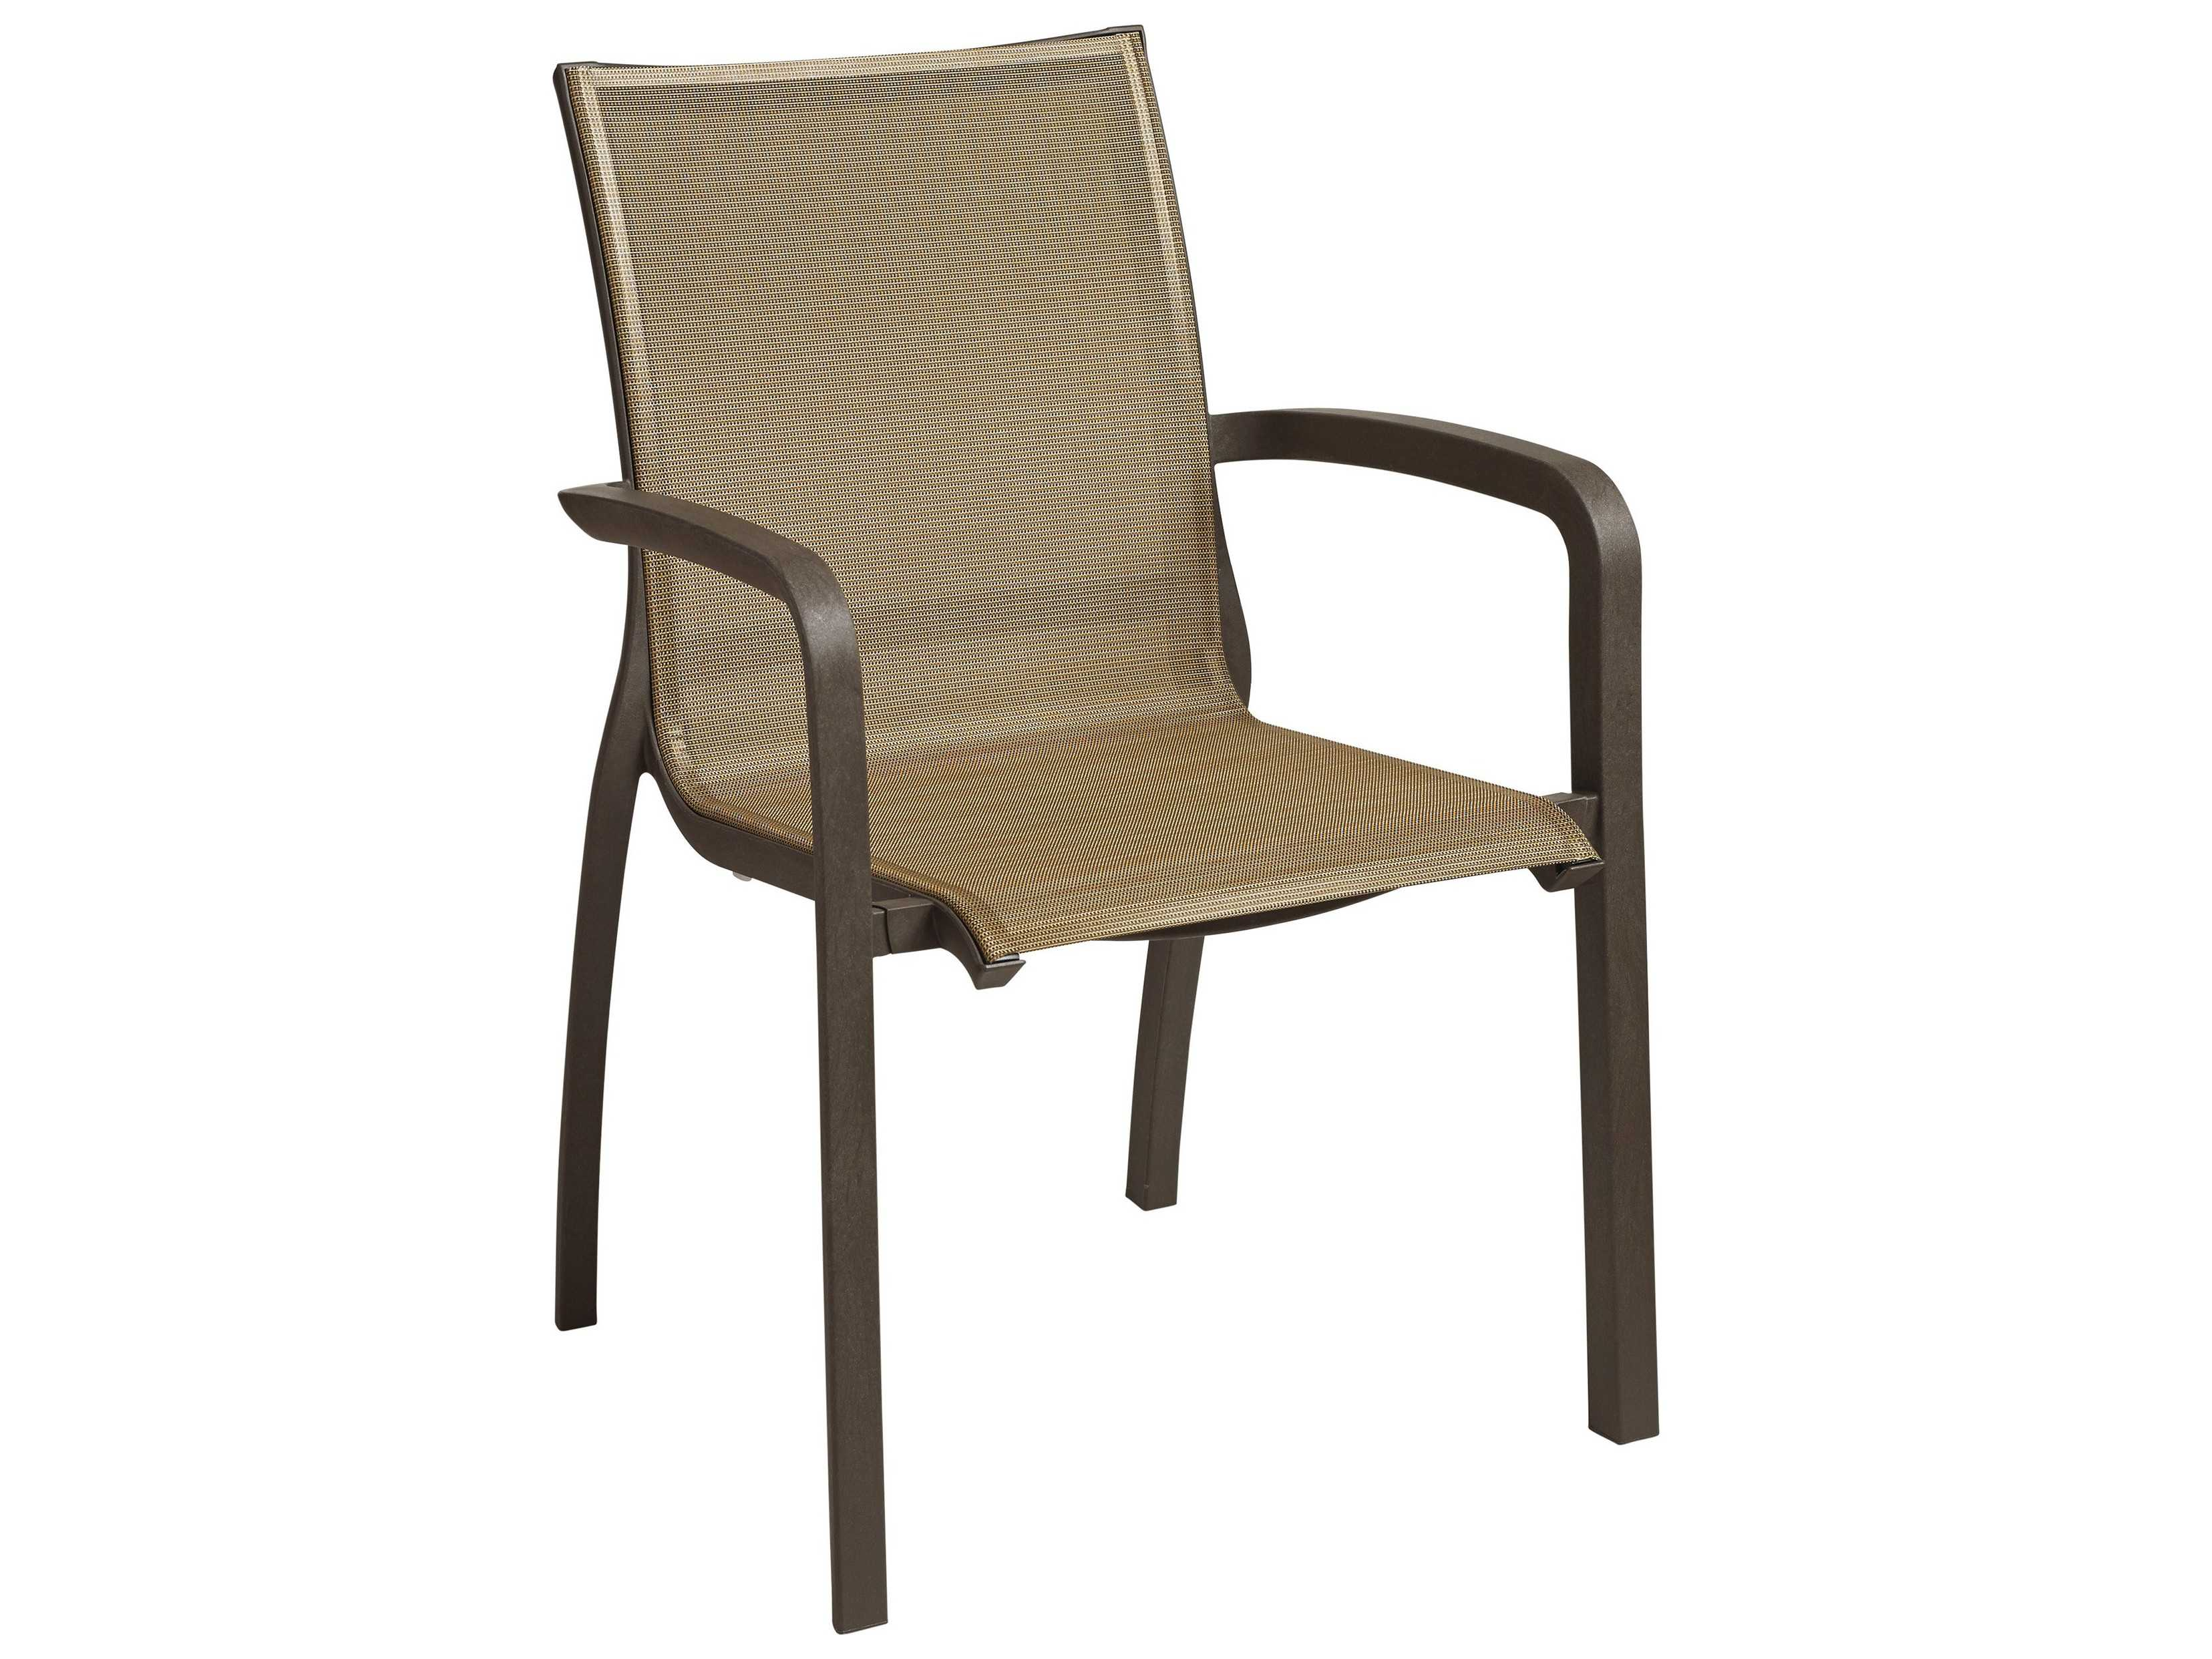 grosfillex madras lounge chairs gold chair covers sunset arm sold in 4 gxus643599